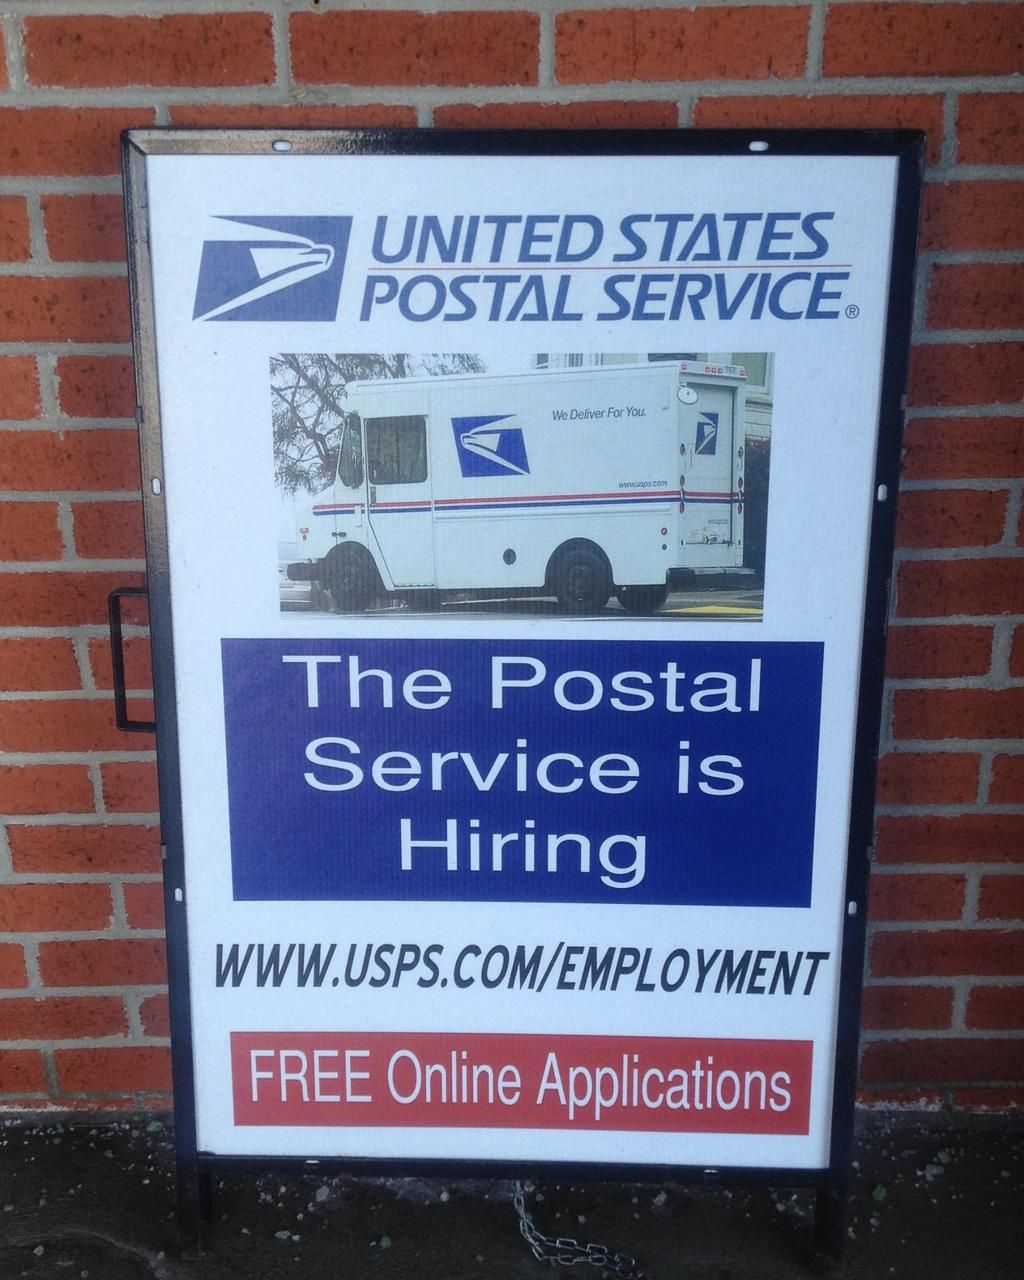 FREE Online Applications? We are so glad the United States